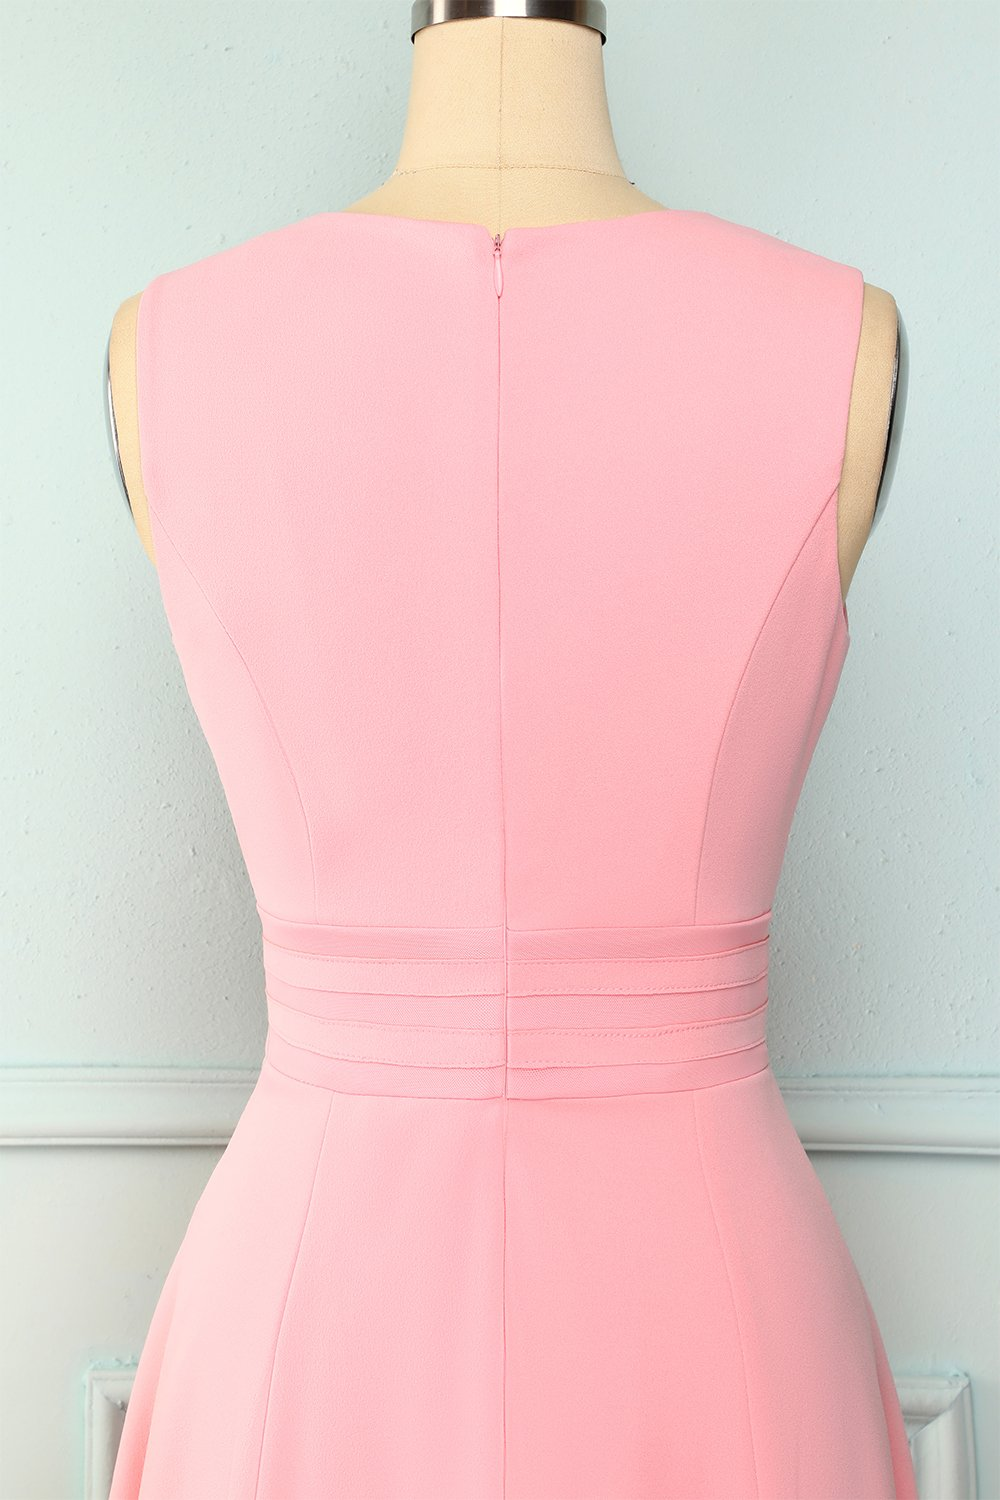 Solid Peach Dress